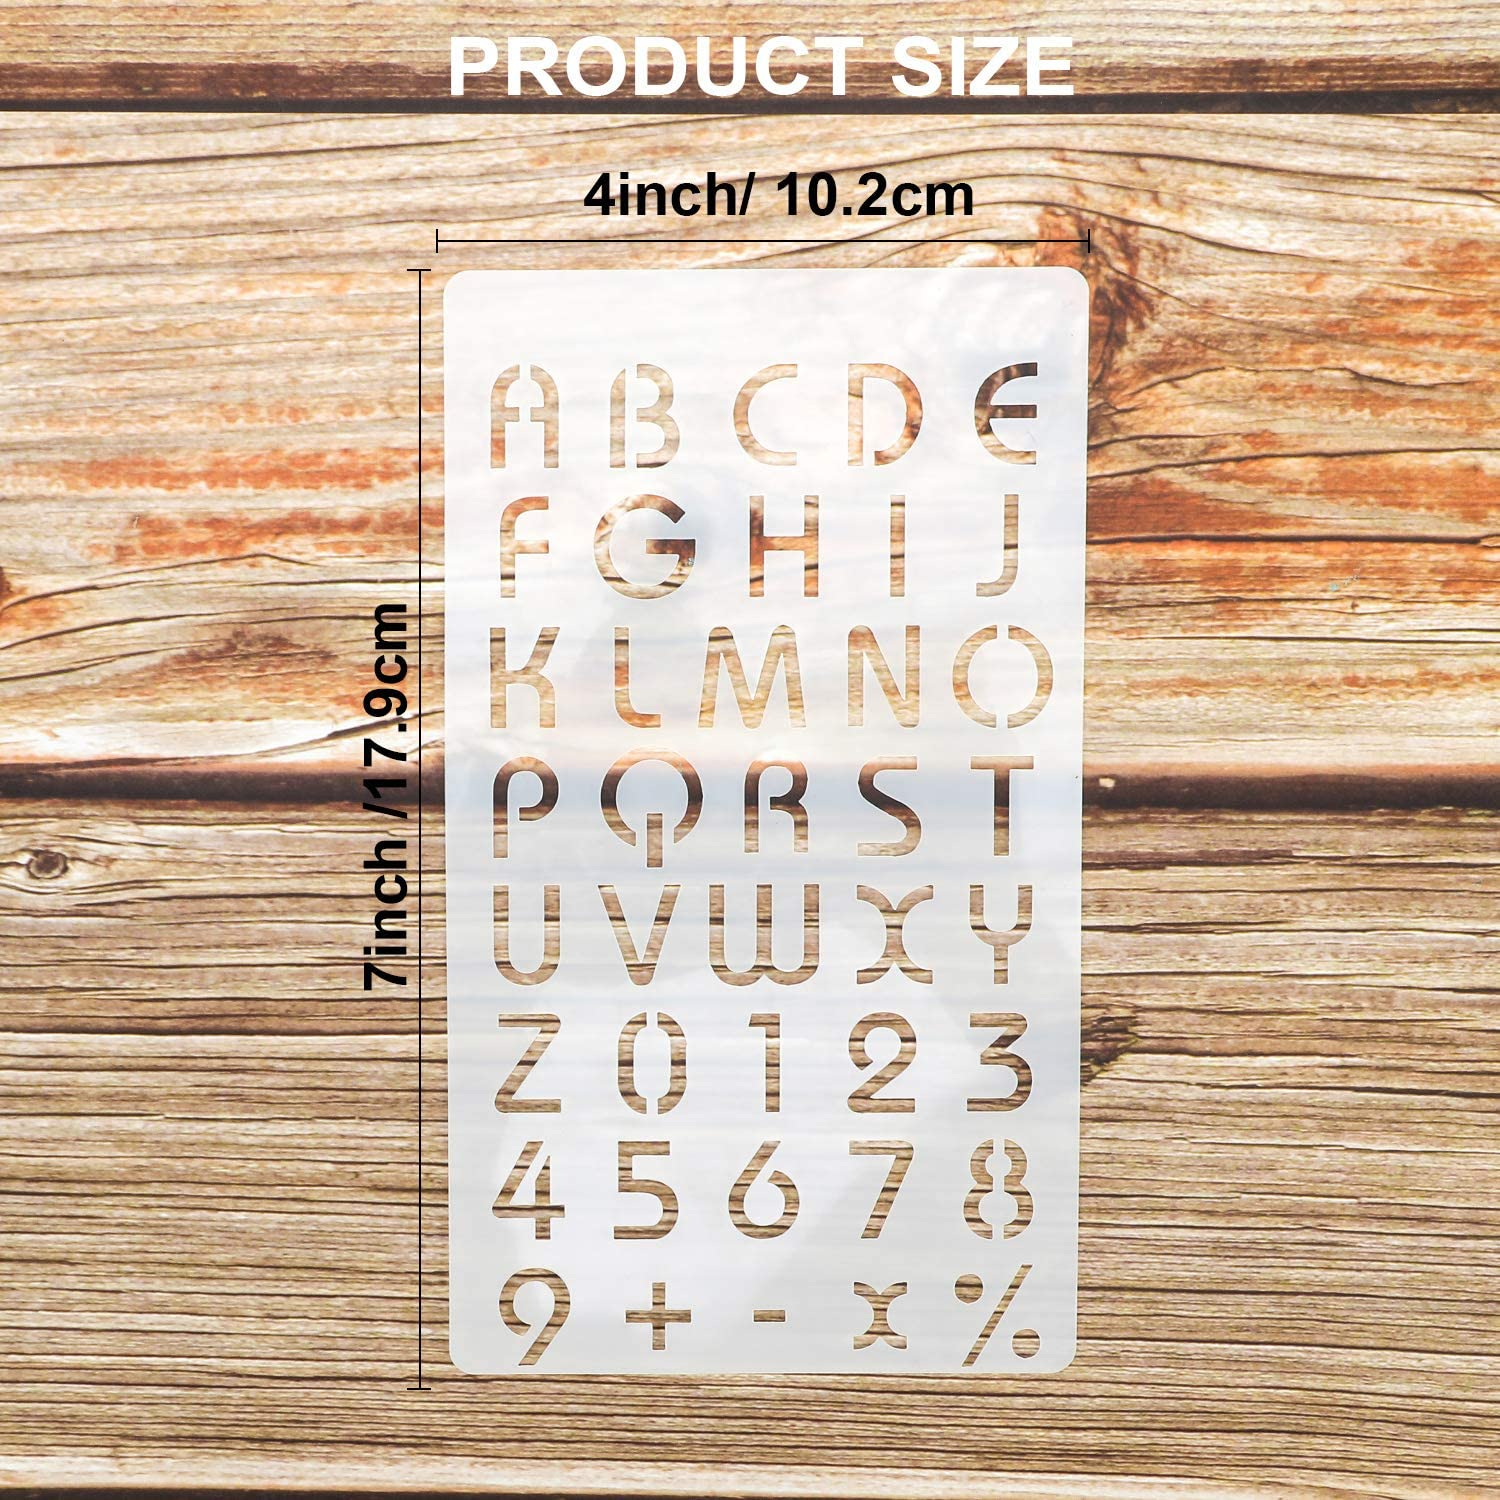 Konsait 20Pack Letter and Number Stencils Reusable Alphabet Stencils Bullet Journal Supplies Templates for Kids Drawing//Scrapbooking//Card//Wall//Notebook//Birthday Party Favor Crafts//Gift Decoration